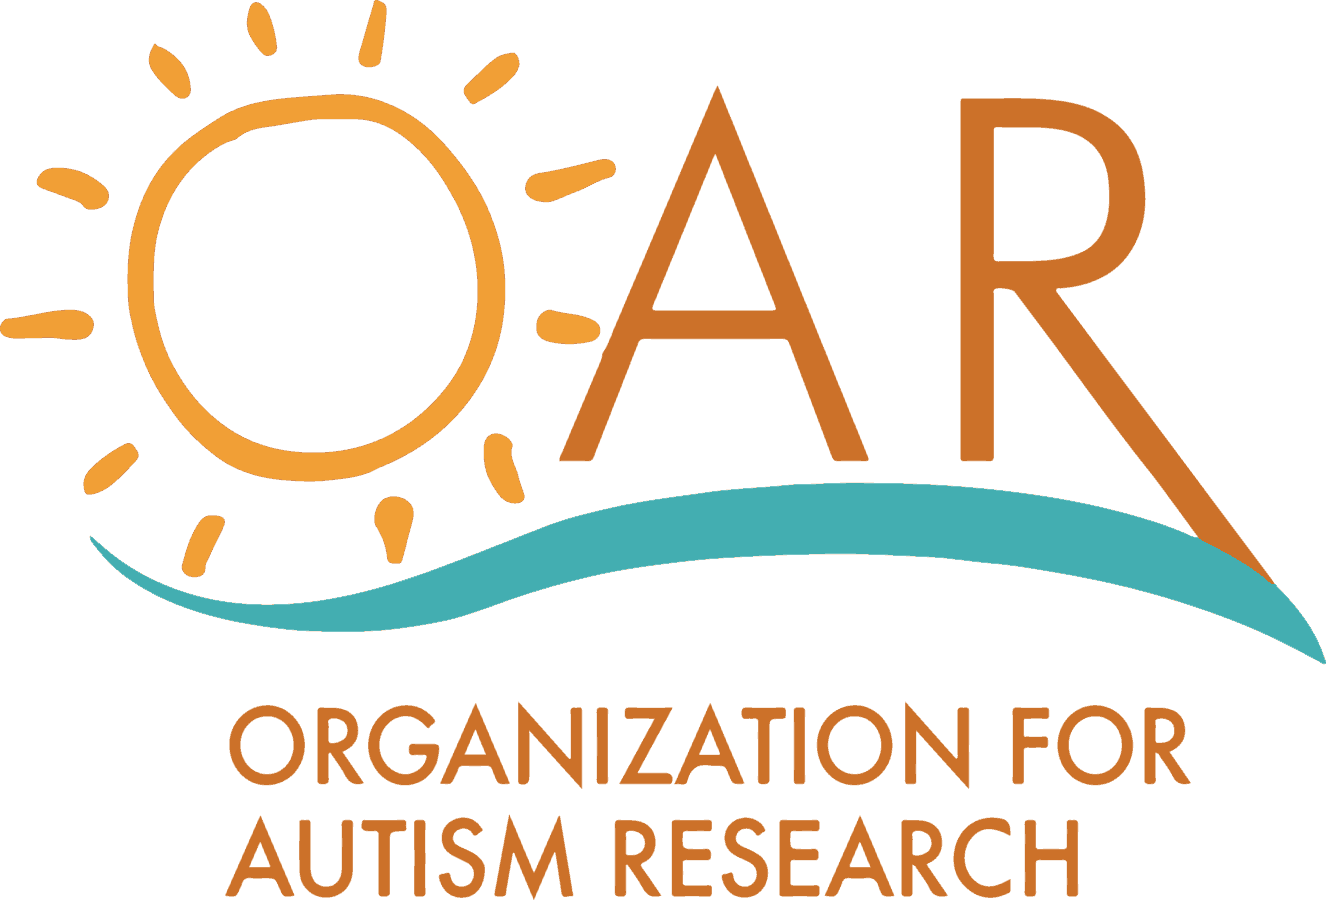 organization autism research logo